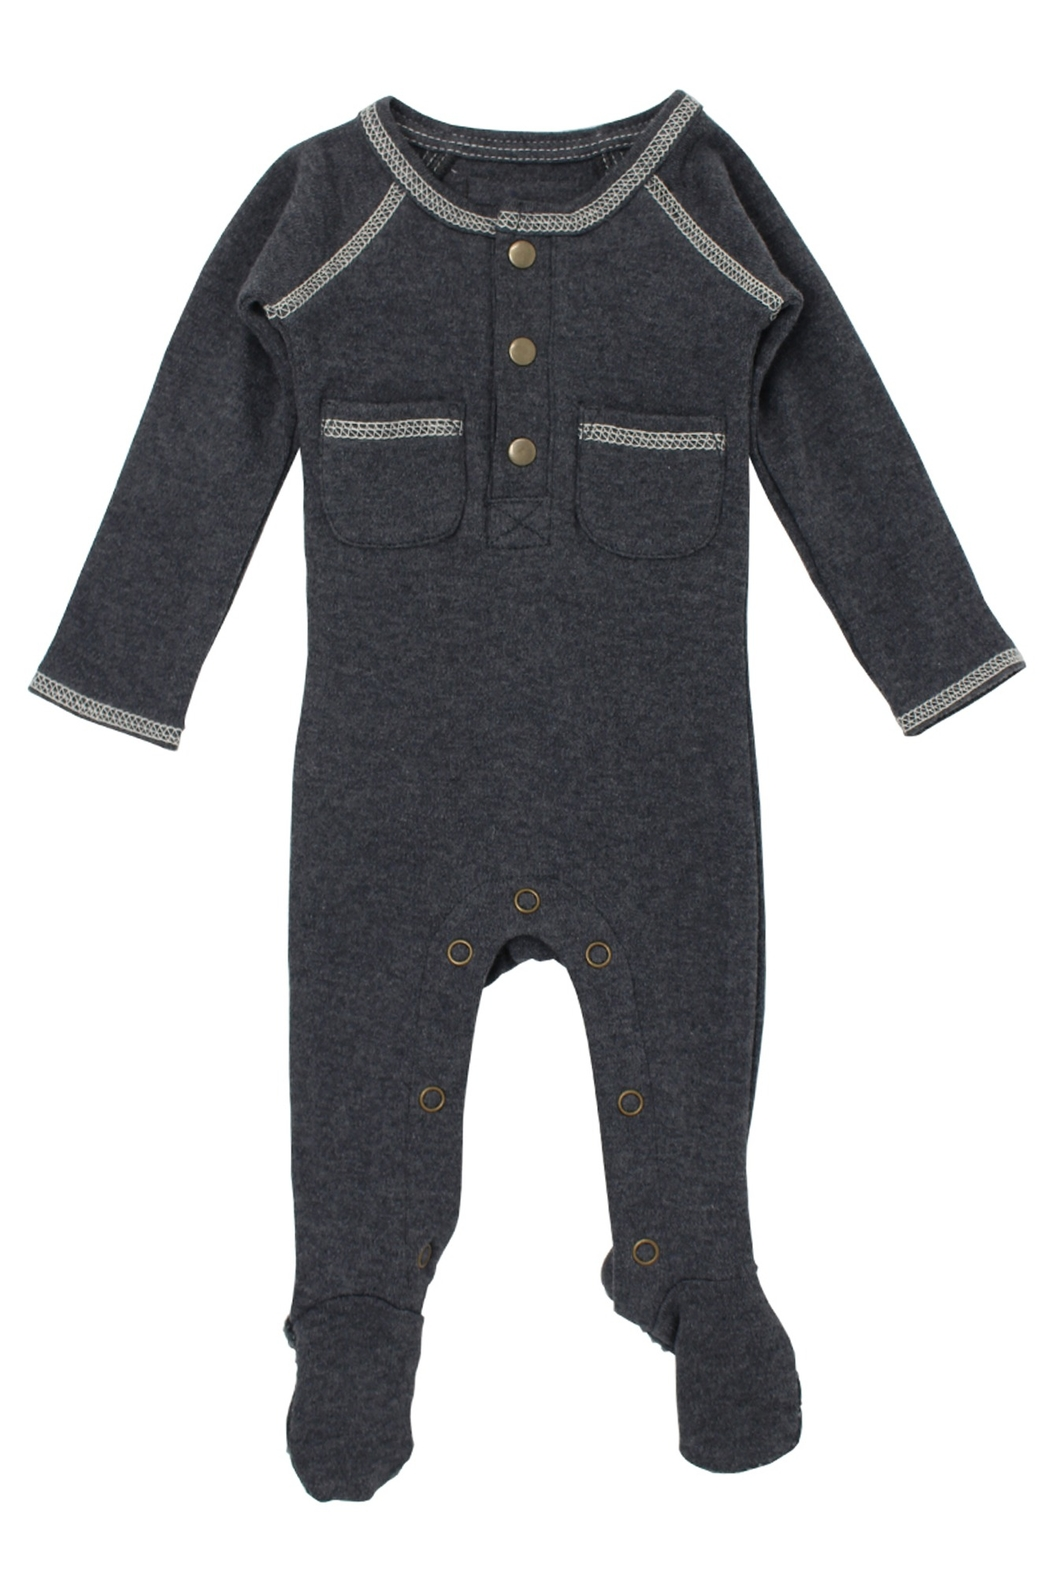 Lovedbaby L'ovedBaby Organic Pocket Footed Overall, Dark Heather/Beige, 0-3m - Main Image